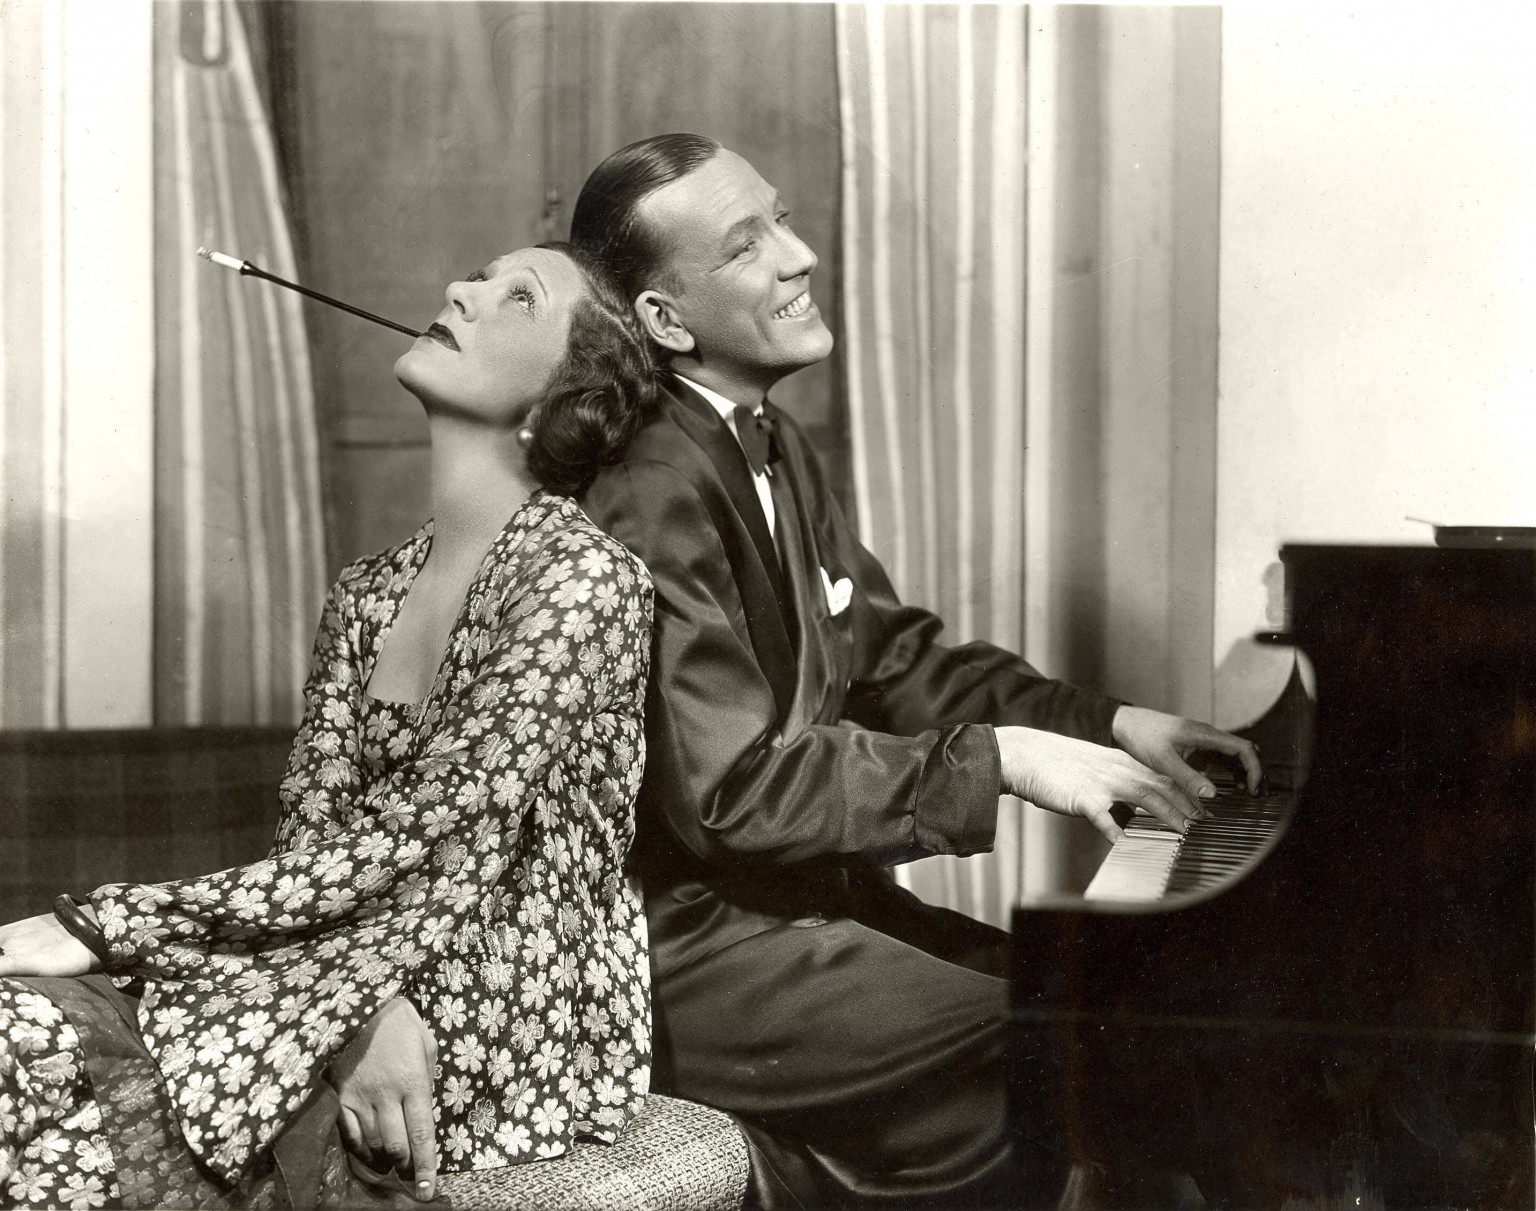 Gertrude Lawrence and Noël Coward in Private Lives, 1931 - Times Square Theatre, New York.